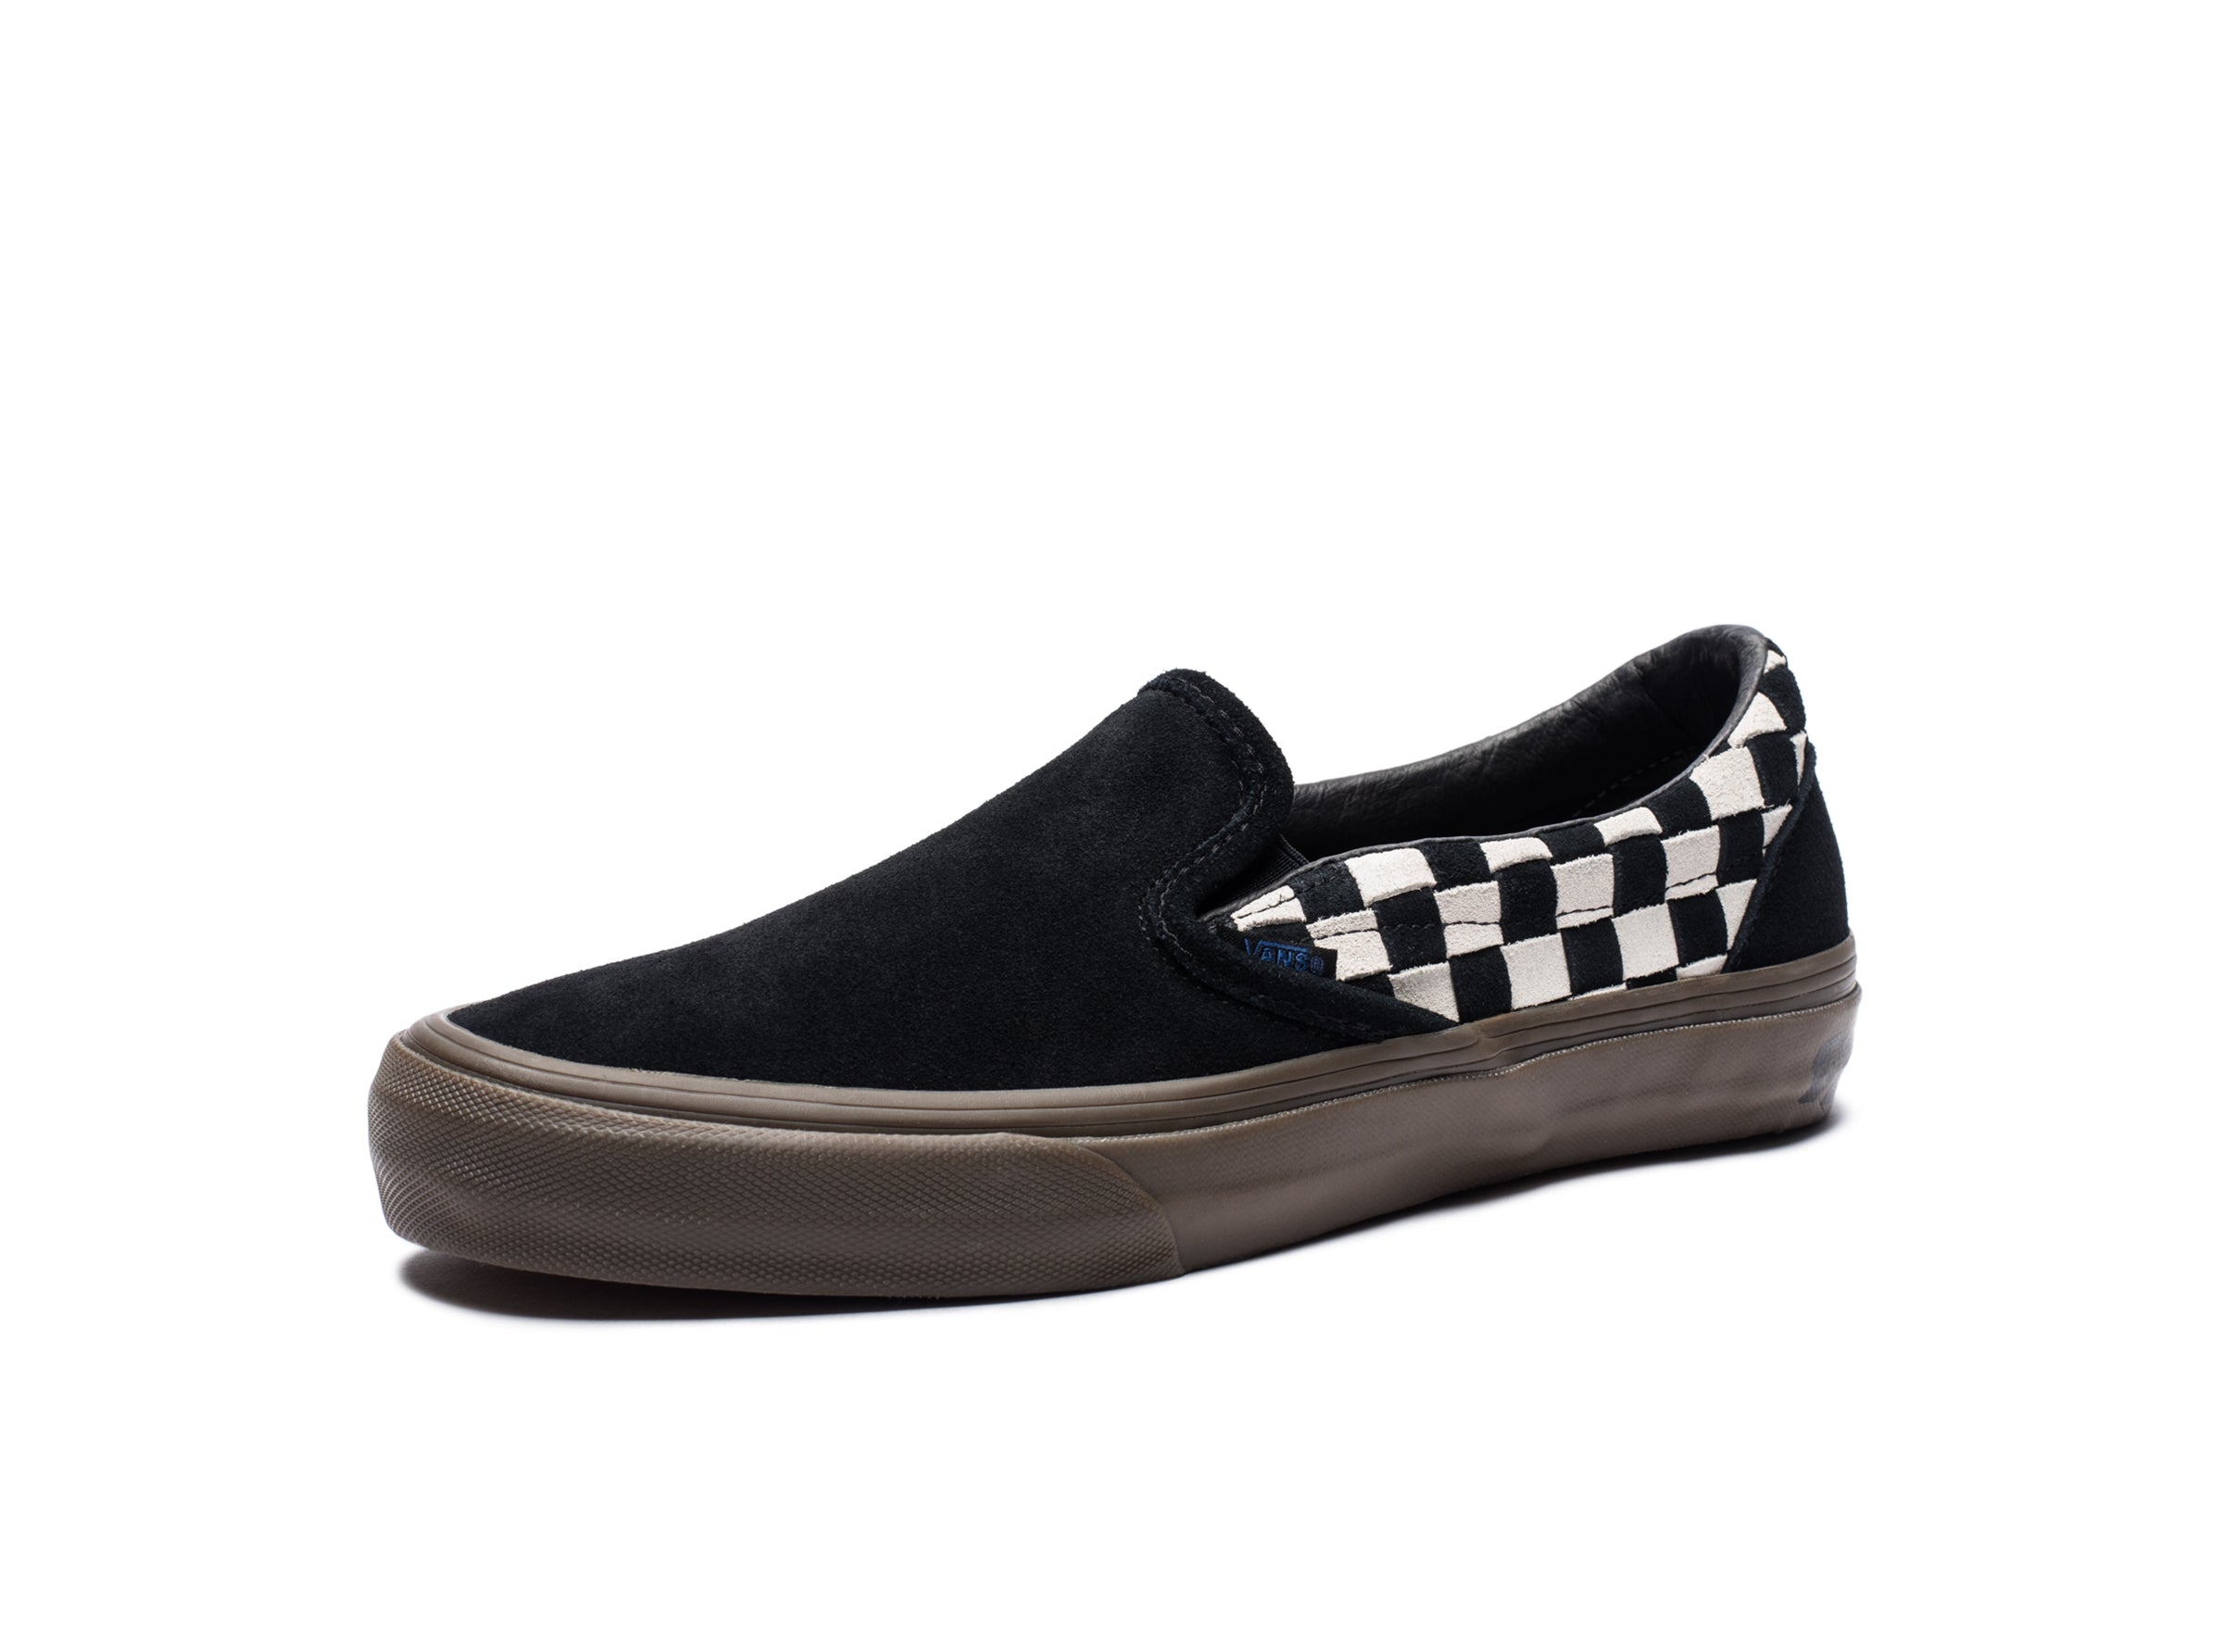 64901902c0 VANS X TAKA HAYASHI SLIP-ON LX (WOVEN SUEDE) - CHECKERBOARD